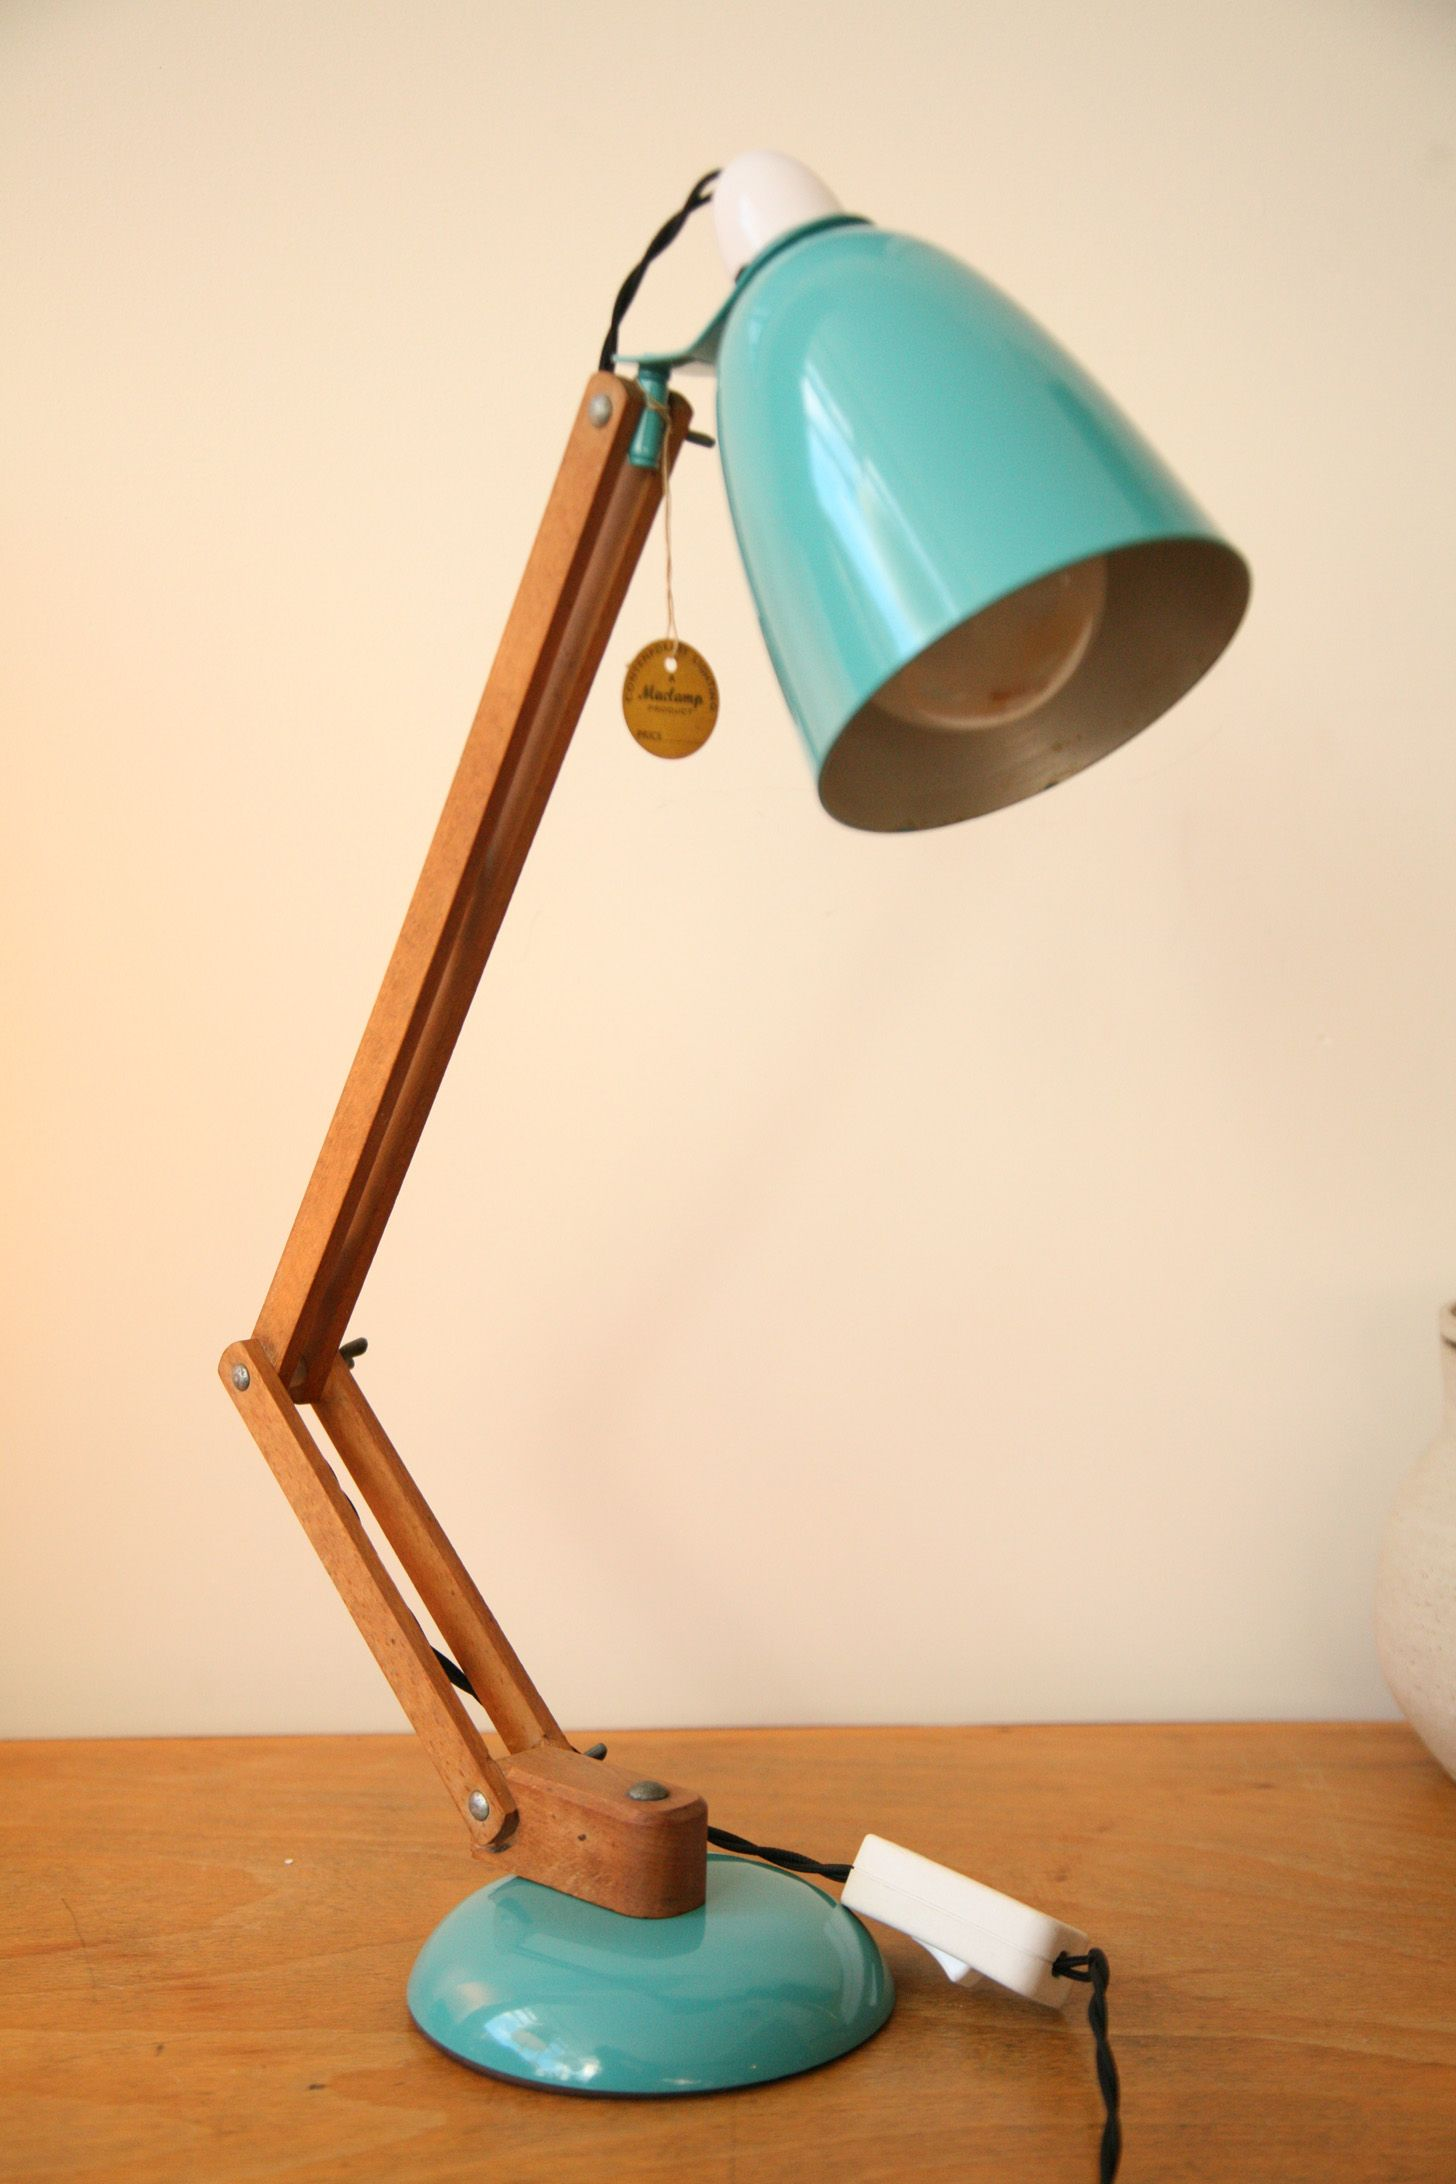 1950s Wooden Maclamp 1456 2184 Desk Lamp Diy Floor Lamp Lamp